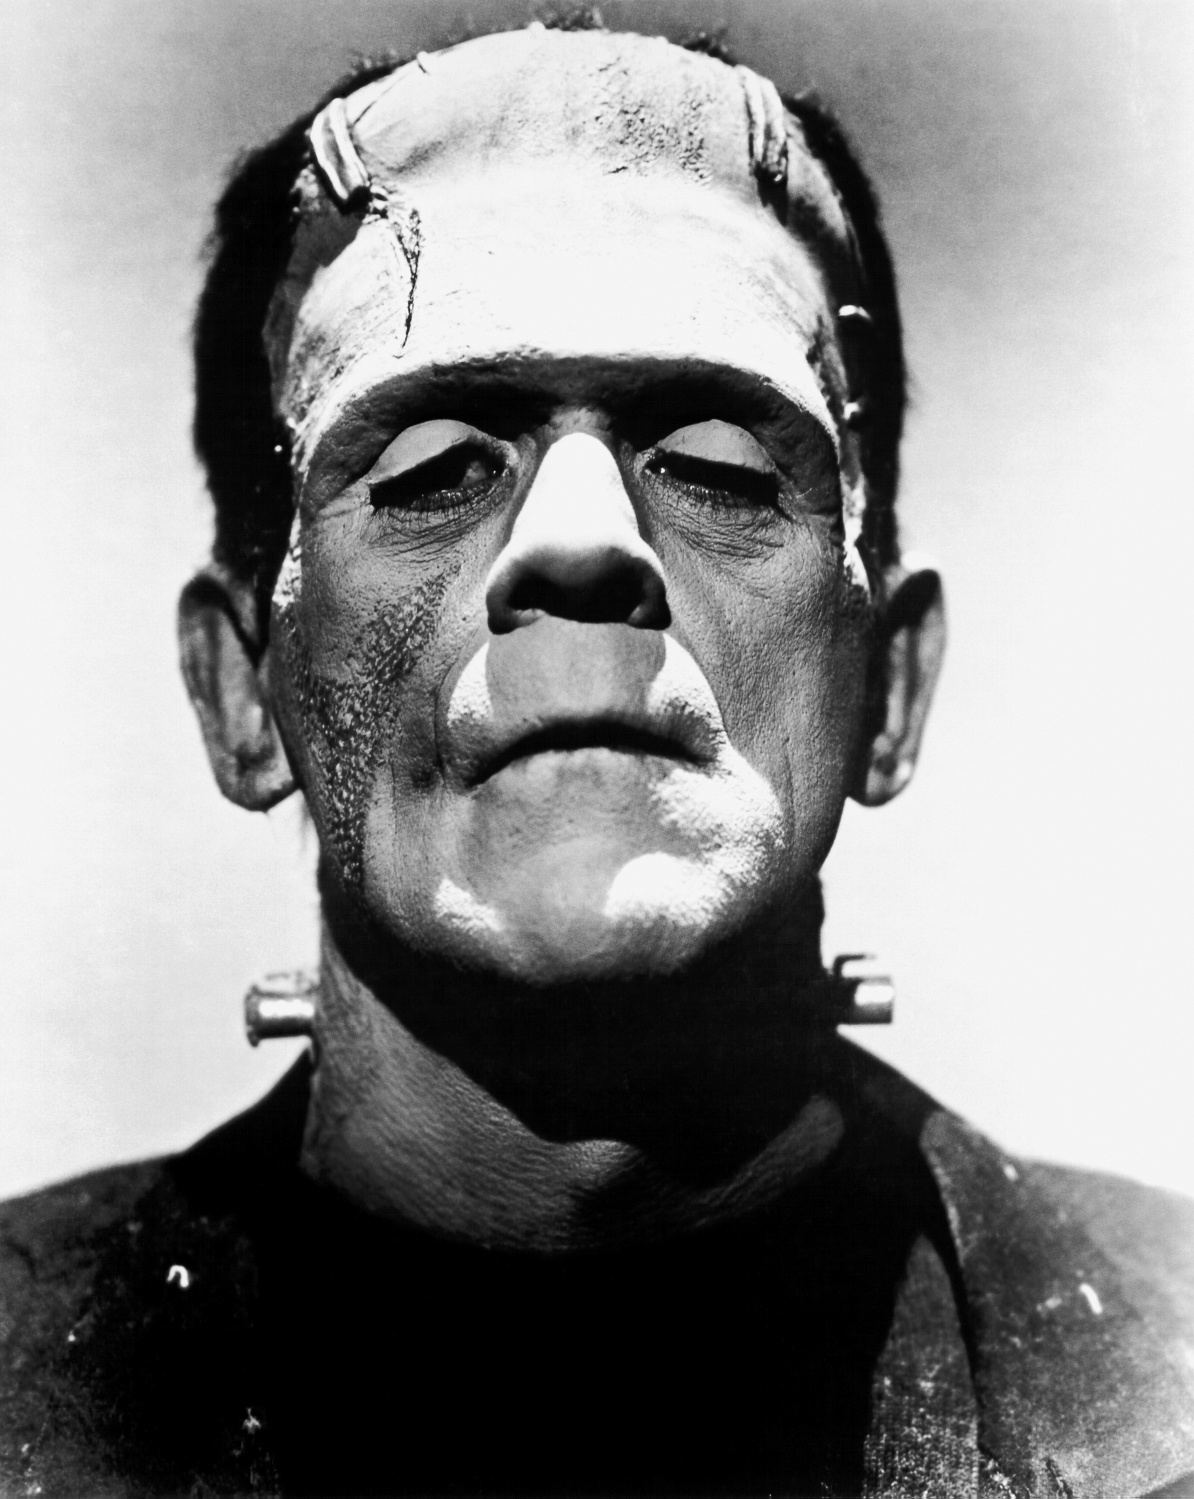 https://upload.wikimedia.org/wikipedia/commons/a/a7/Frankenstein's_monster_(Boris_Karloff).jpg